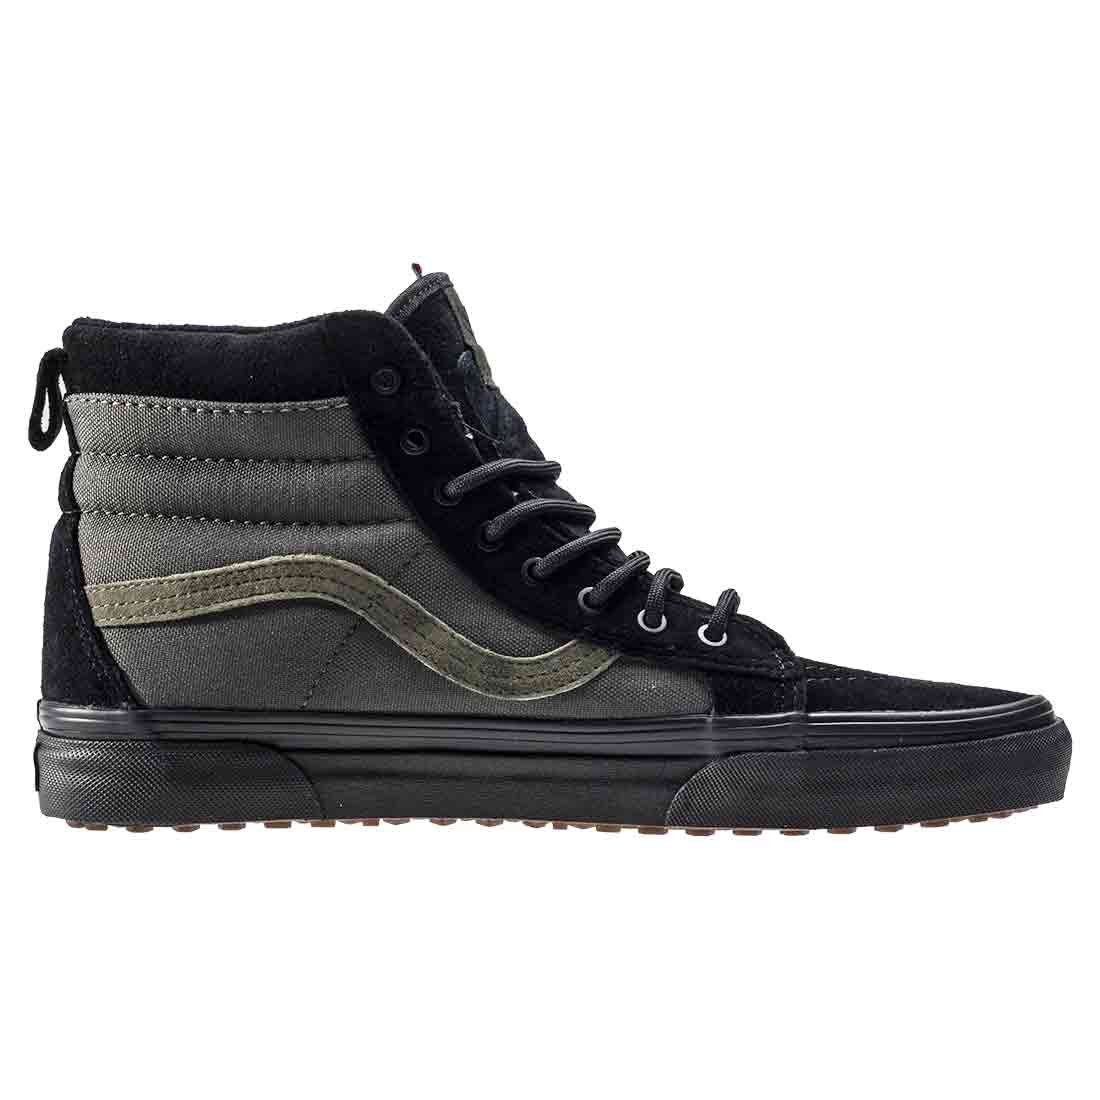 Vans Sk8-Hi Unisex Casual and High-Top Skate Shoes, Comfortable and Casual Durable in Signature Waffle Rubber Sole B01MPW0VC9 7.5 D(M) US|Black / Rosin b72a1e